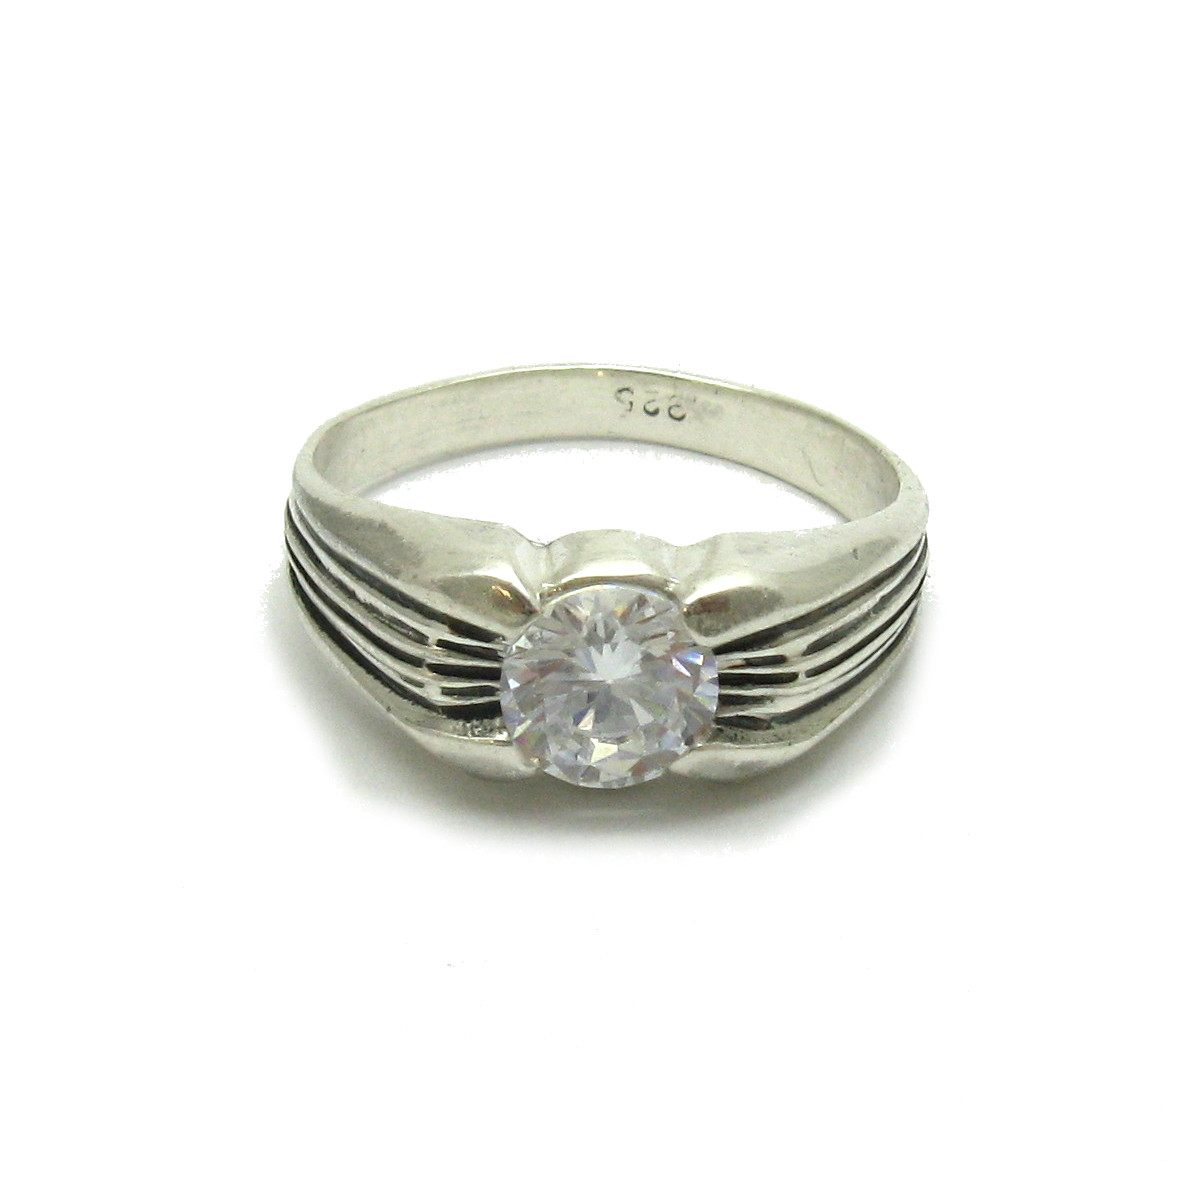 Silver ring - R000279